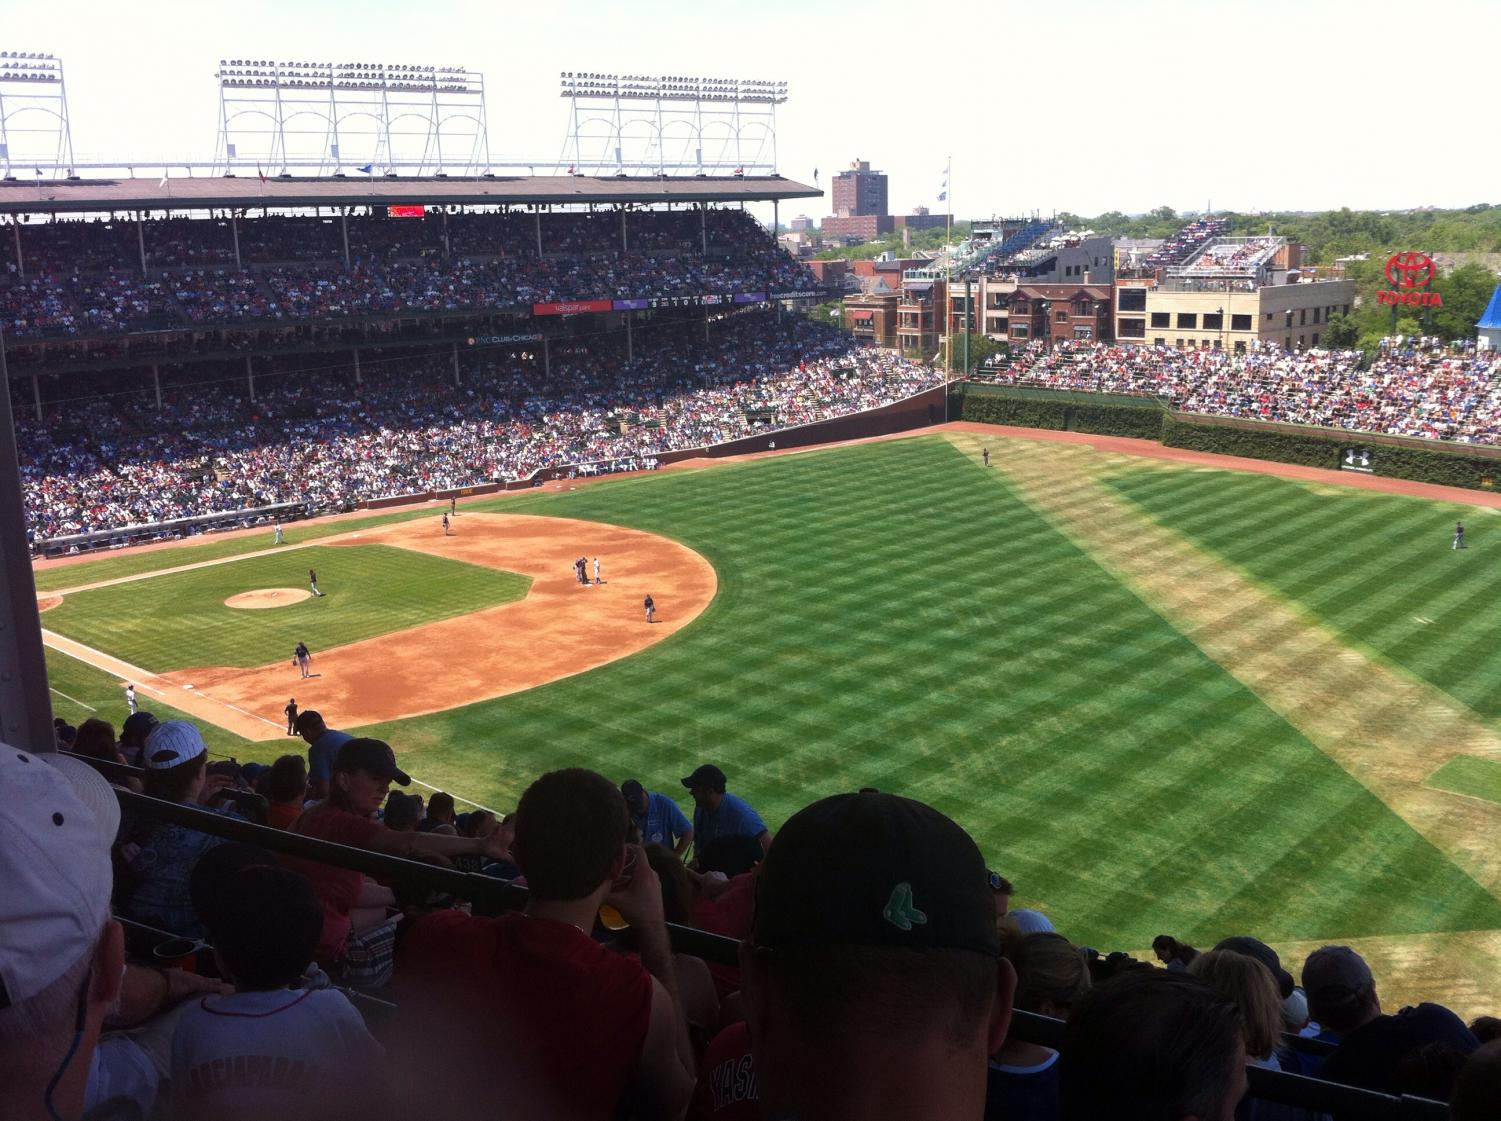 The baseball field when thee Cubs played the Red Sox this past year.